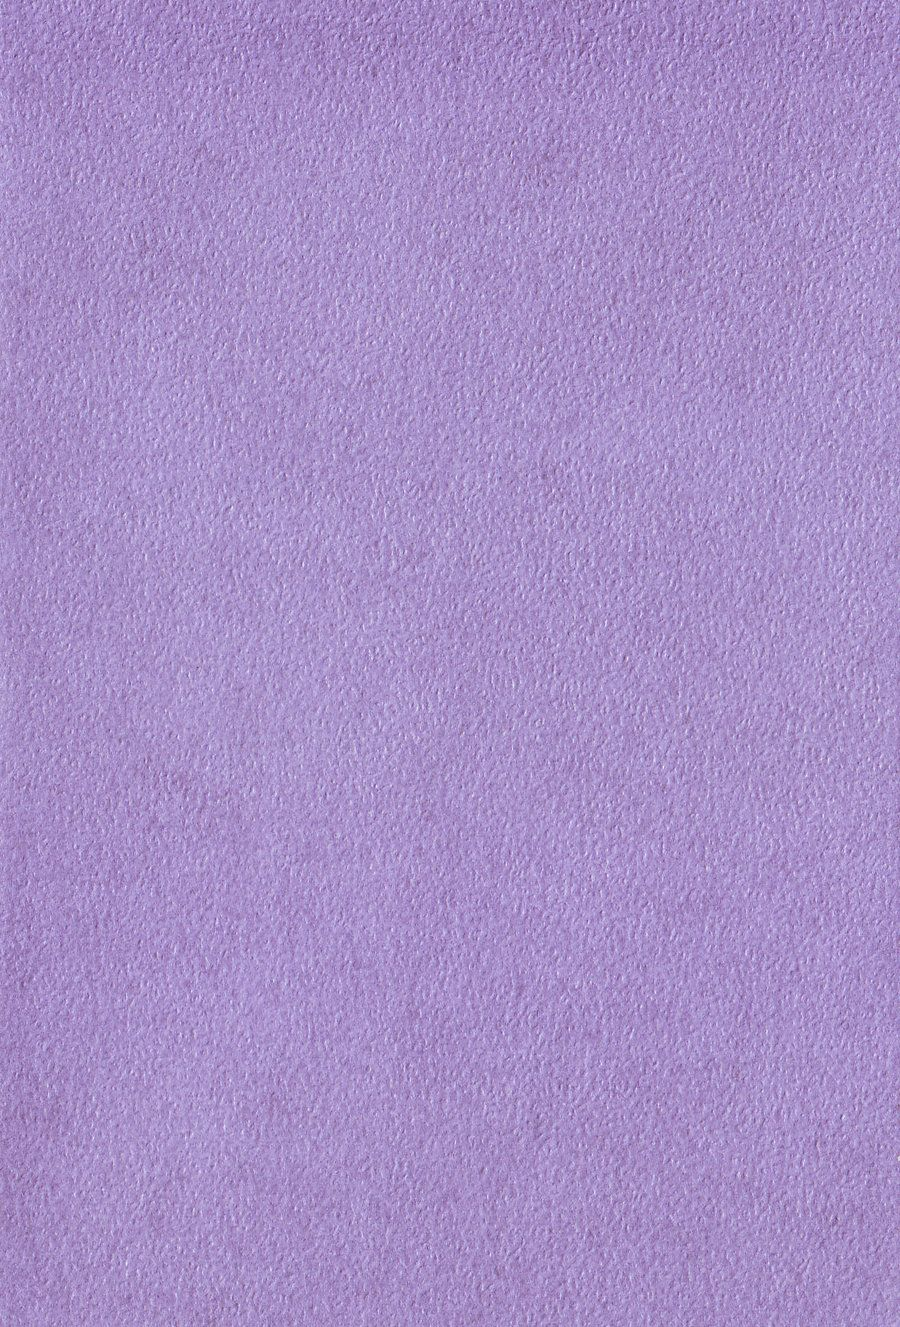 Lilac Wallpaper (44+ images)